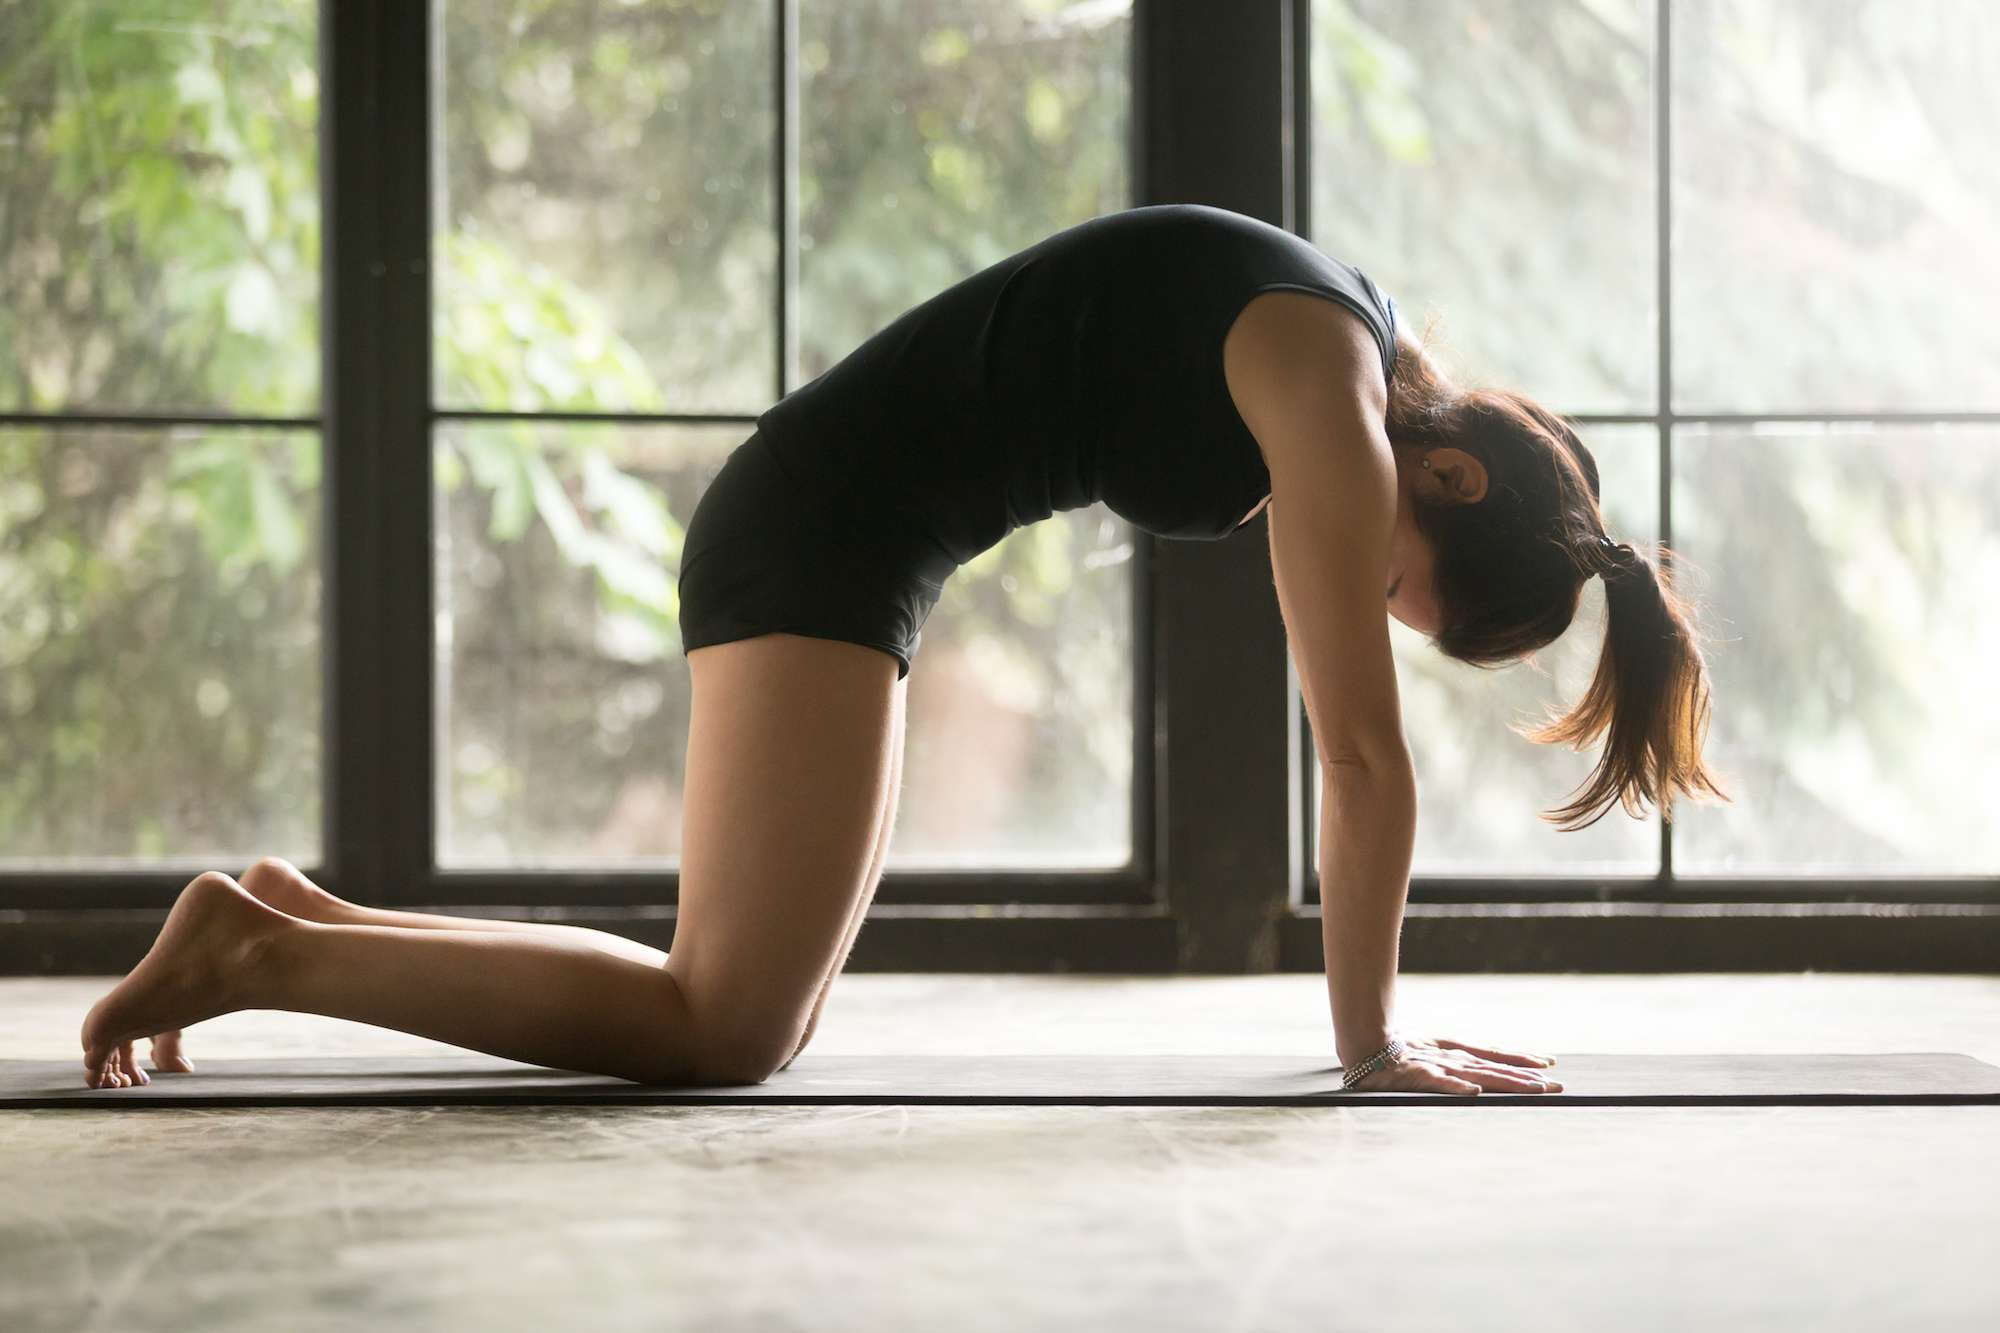 A woman doing cat pose